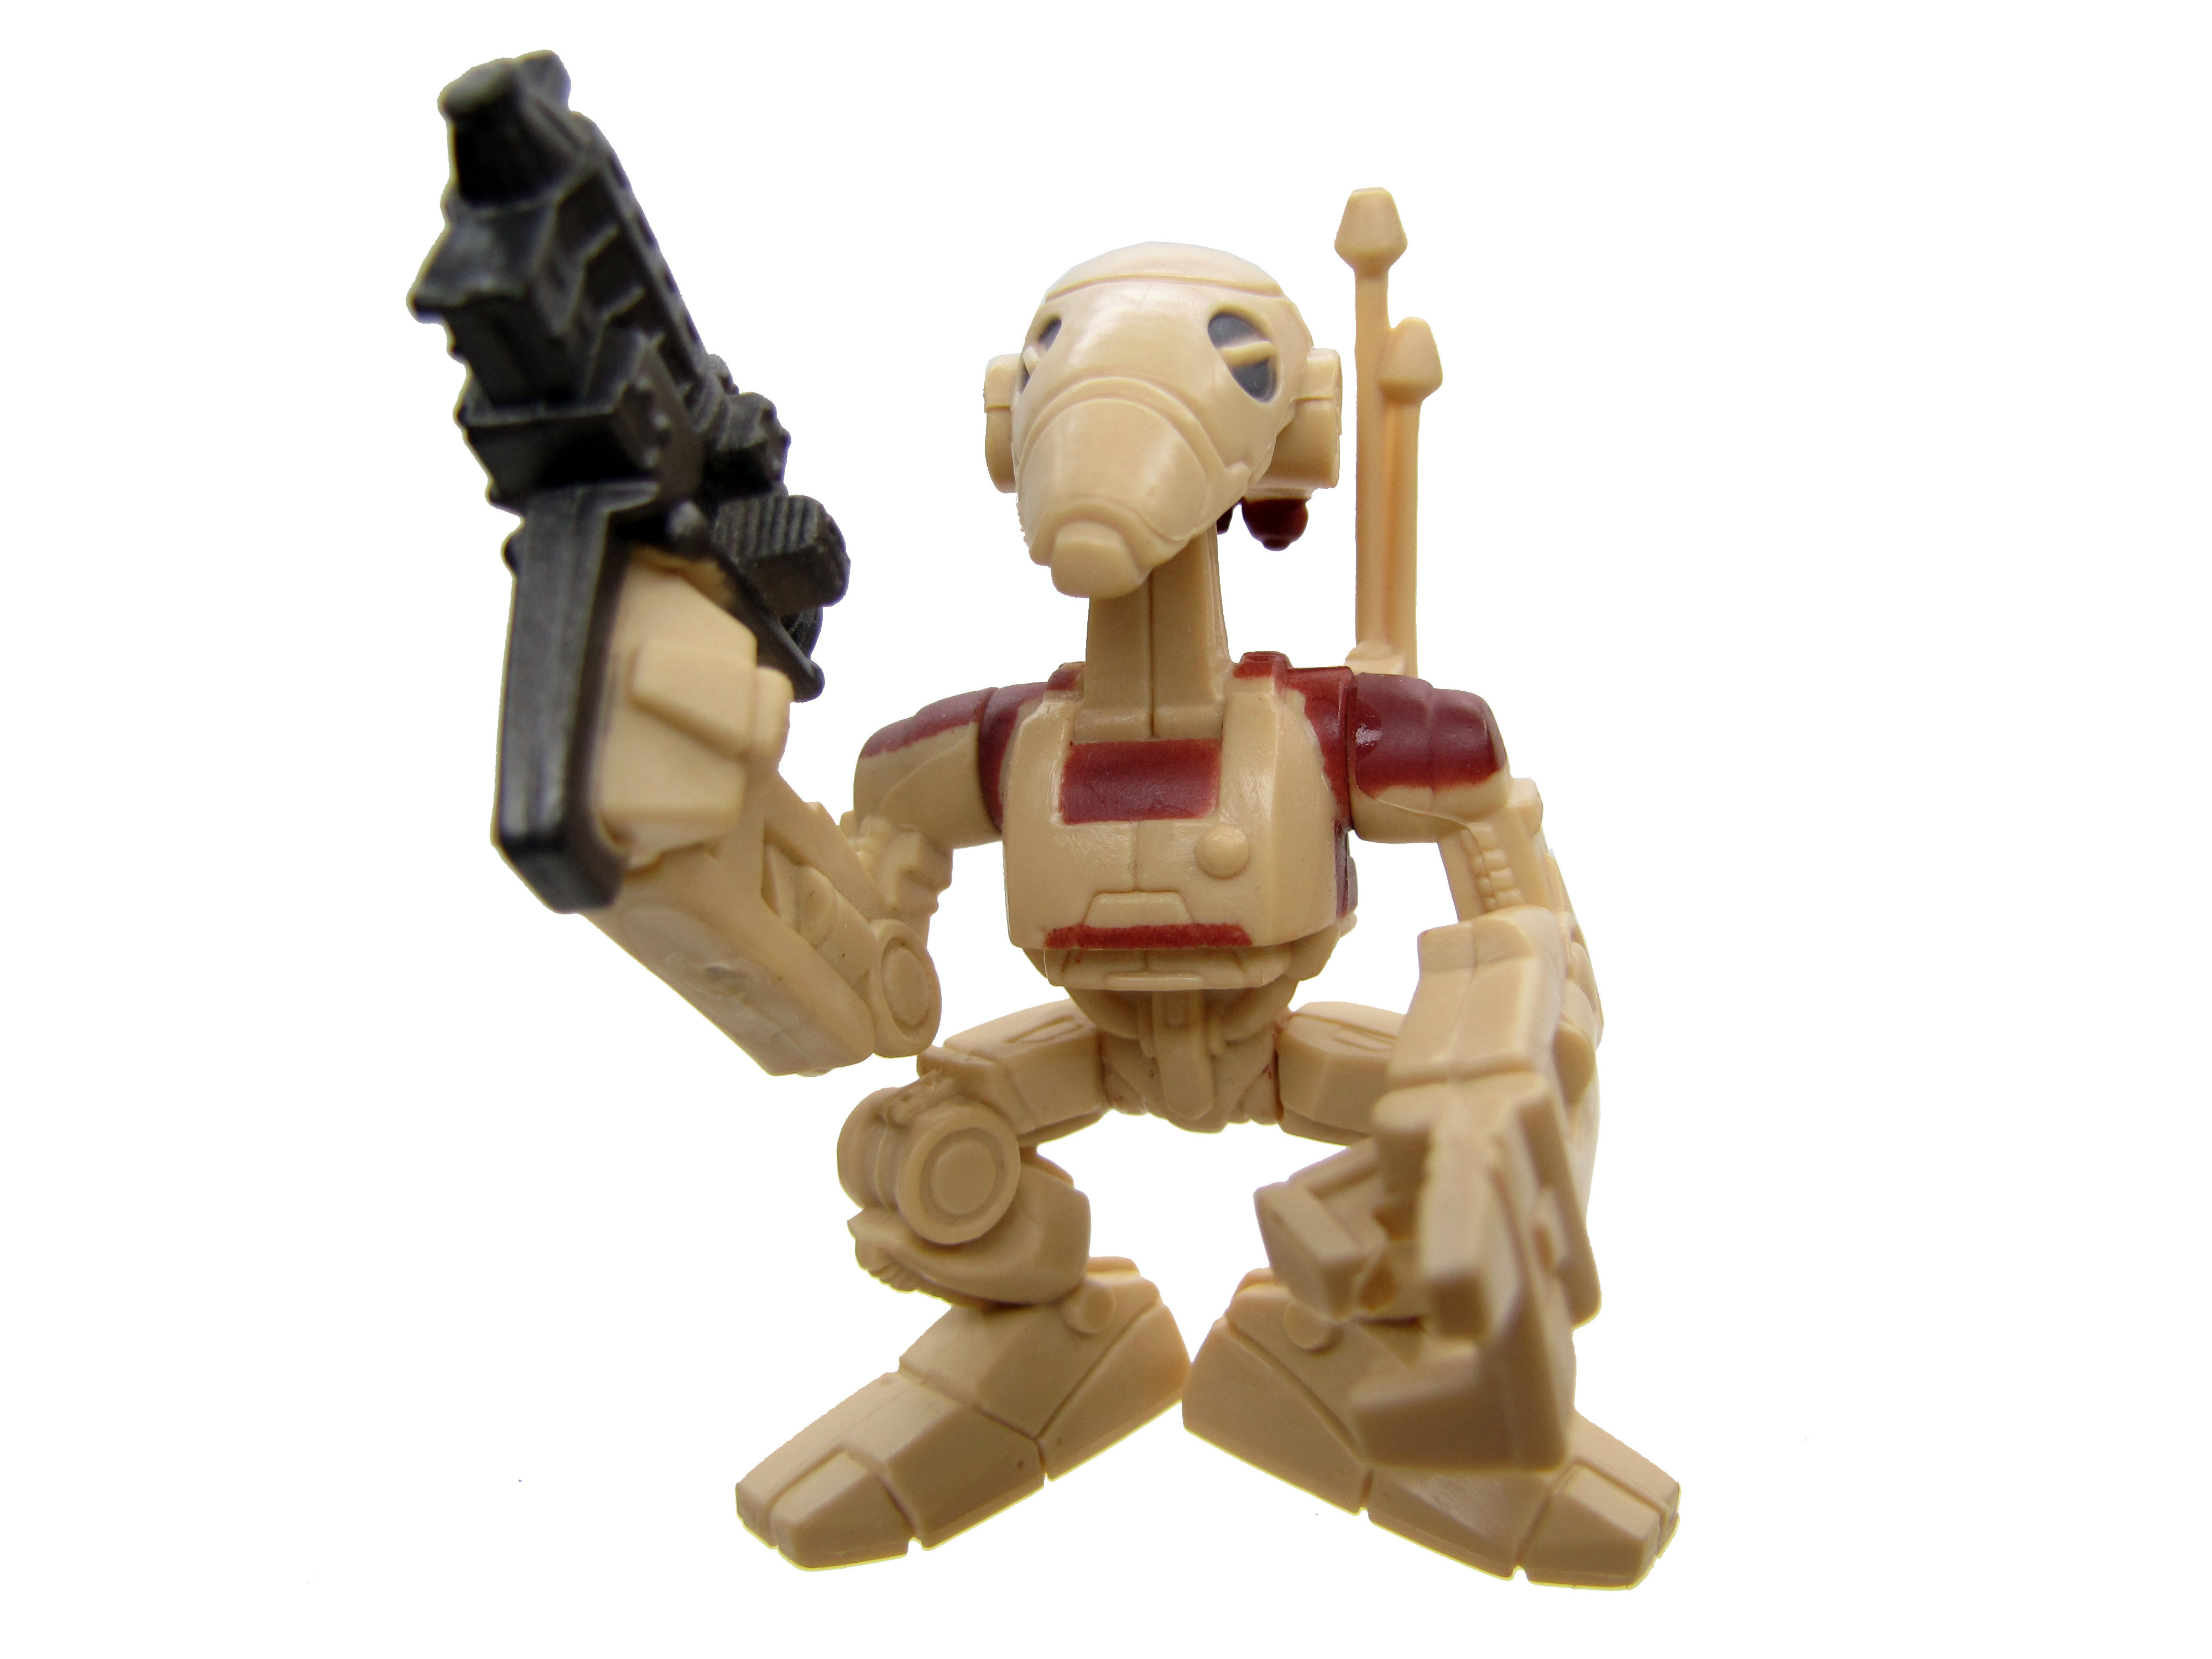 Star Wars Galactic Heroes BATTLE OF NABOO BATTLE DROID Complete